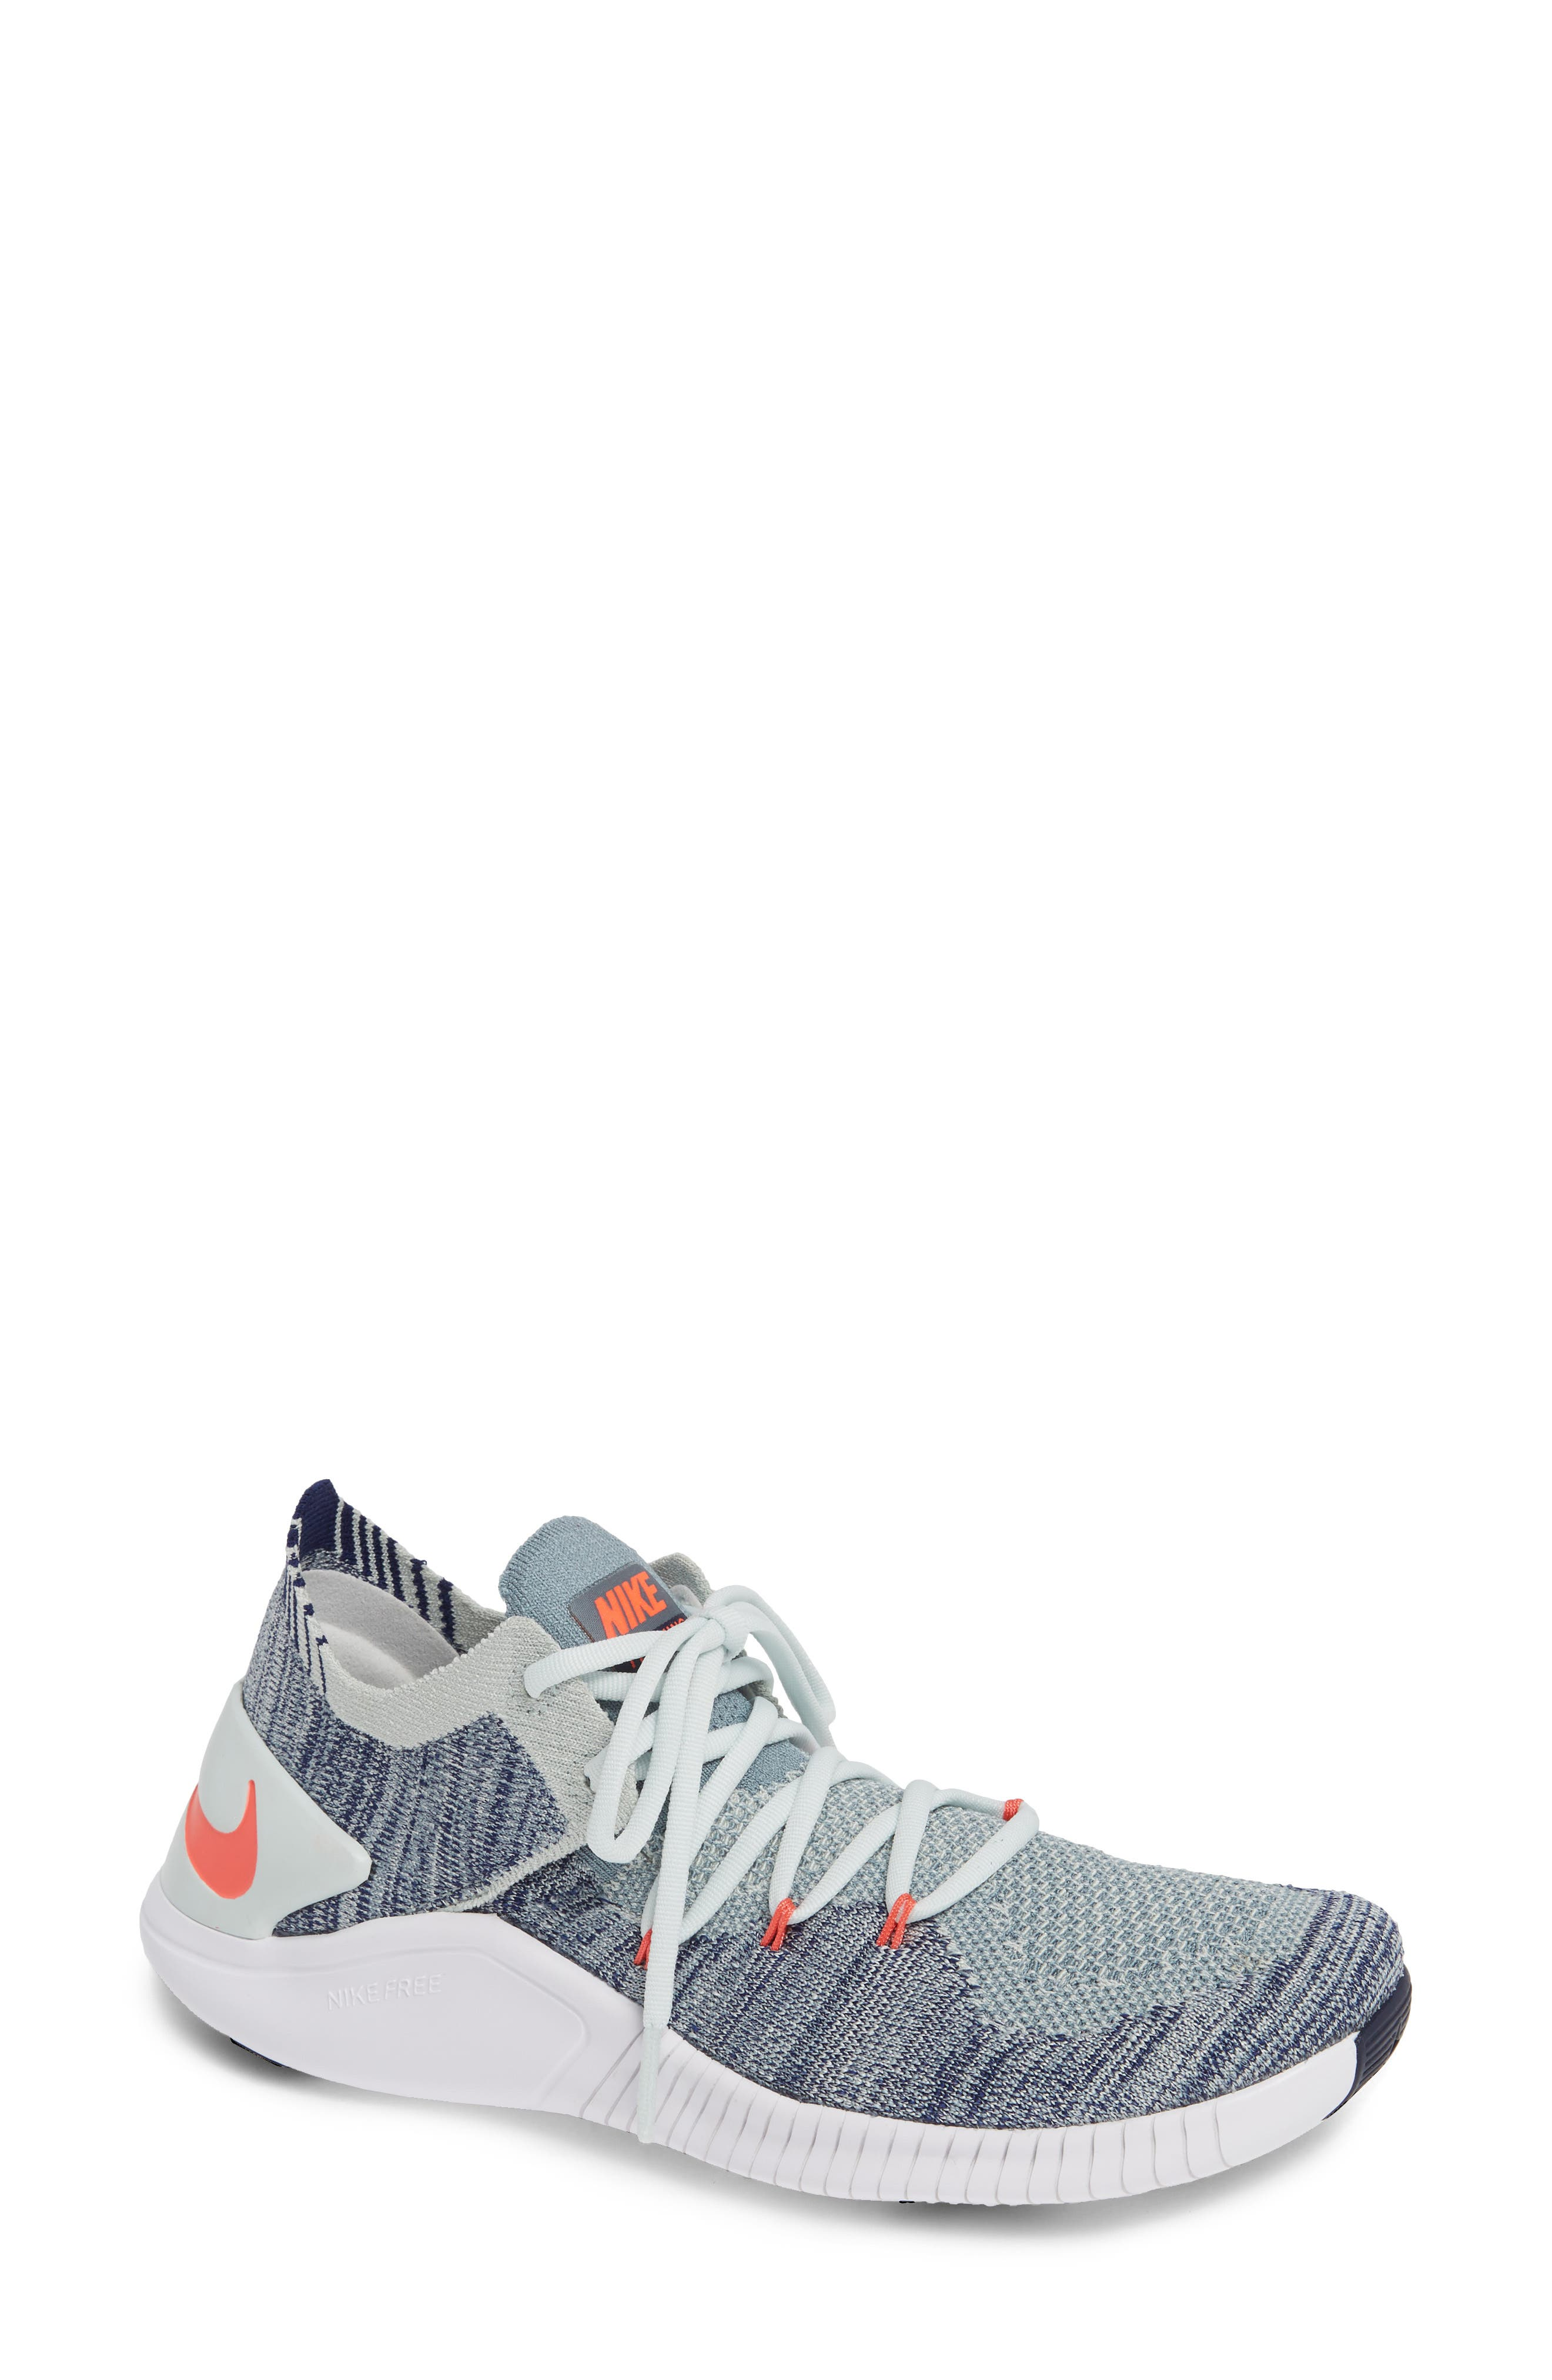 Free TR Flyknit 3 Training Shoe,                         Main,                         color, BARELY GREY/ EMBER GLOW/ BLUE